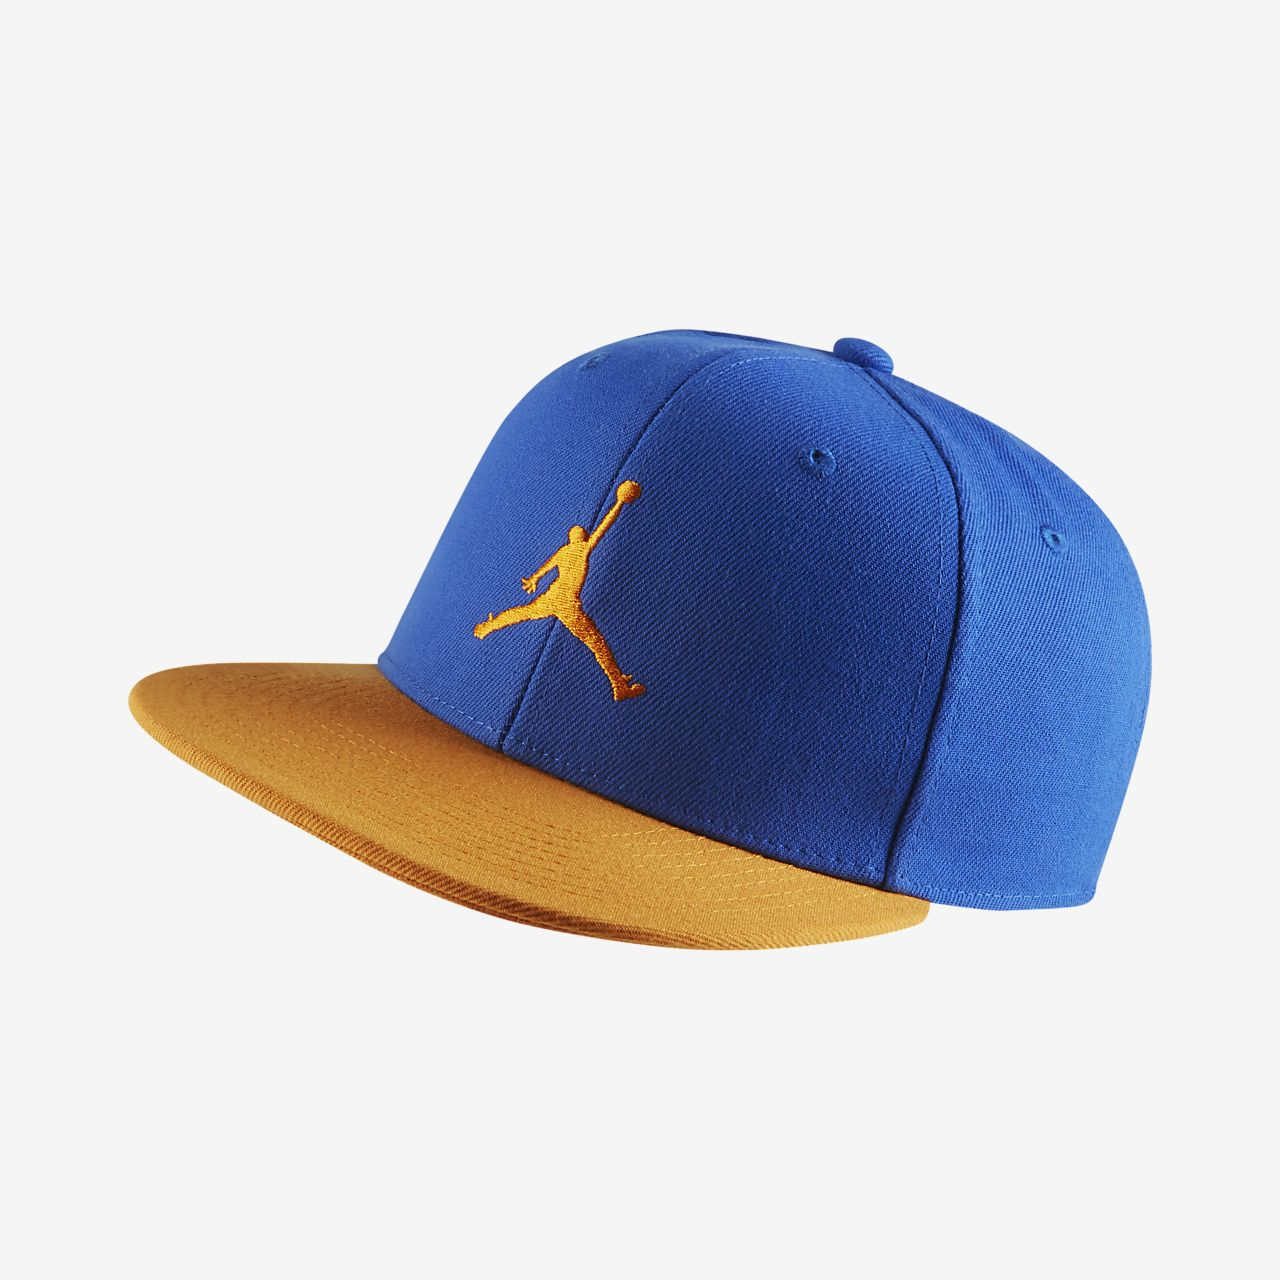 98a0182b550 Jordan Jumpman Kids  Adjustable Hat. Nike.com IE